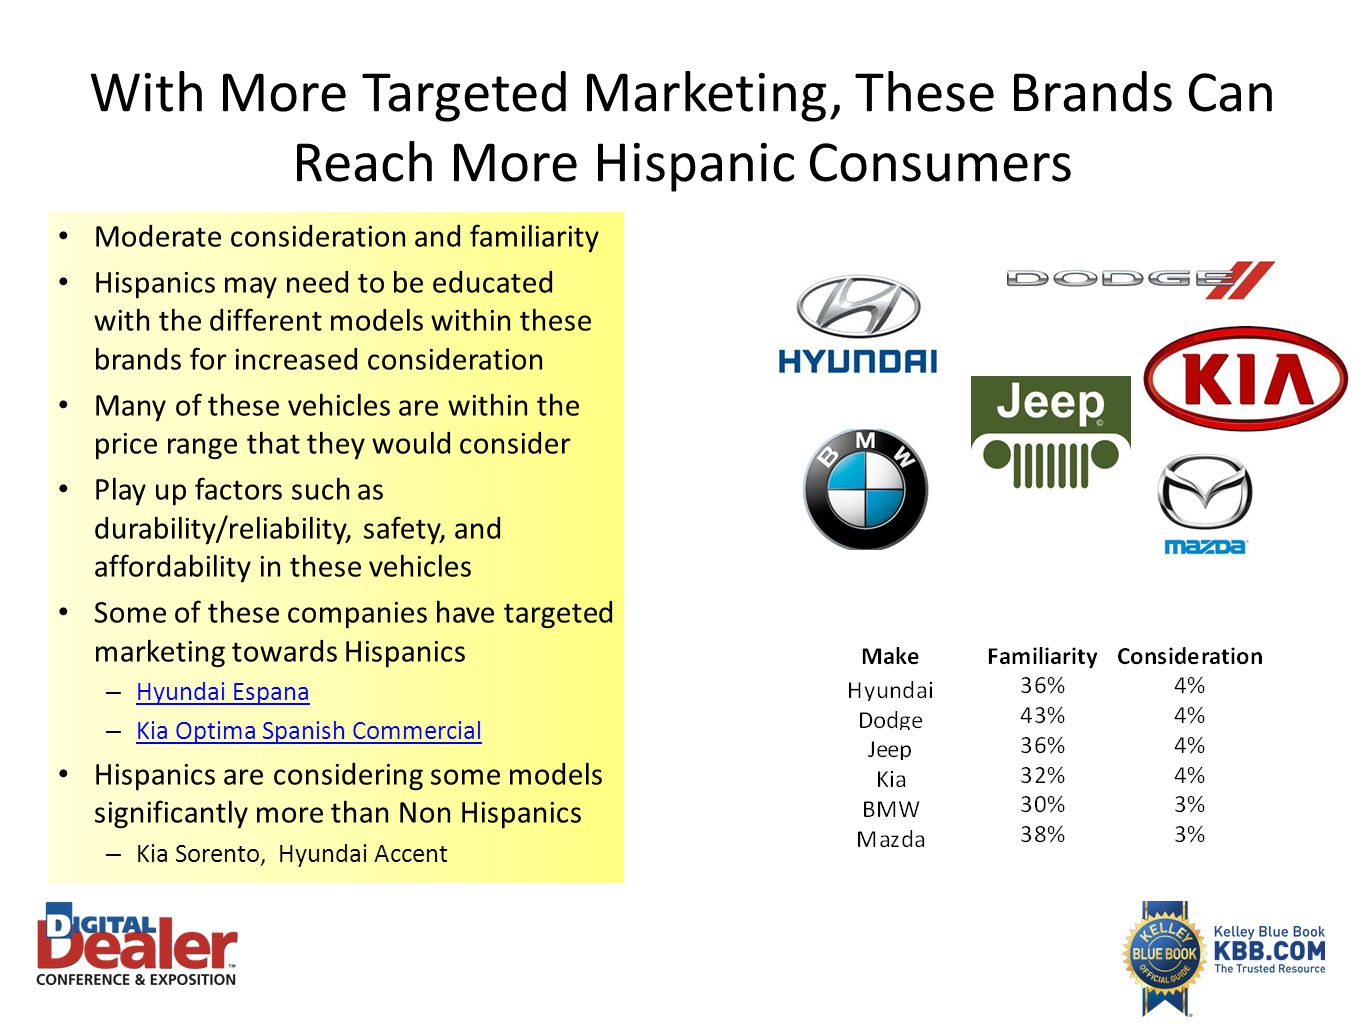 With More Targeted Marketing, These Brands Can Reach More Hispanic Consumers